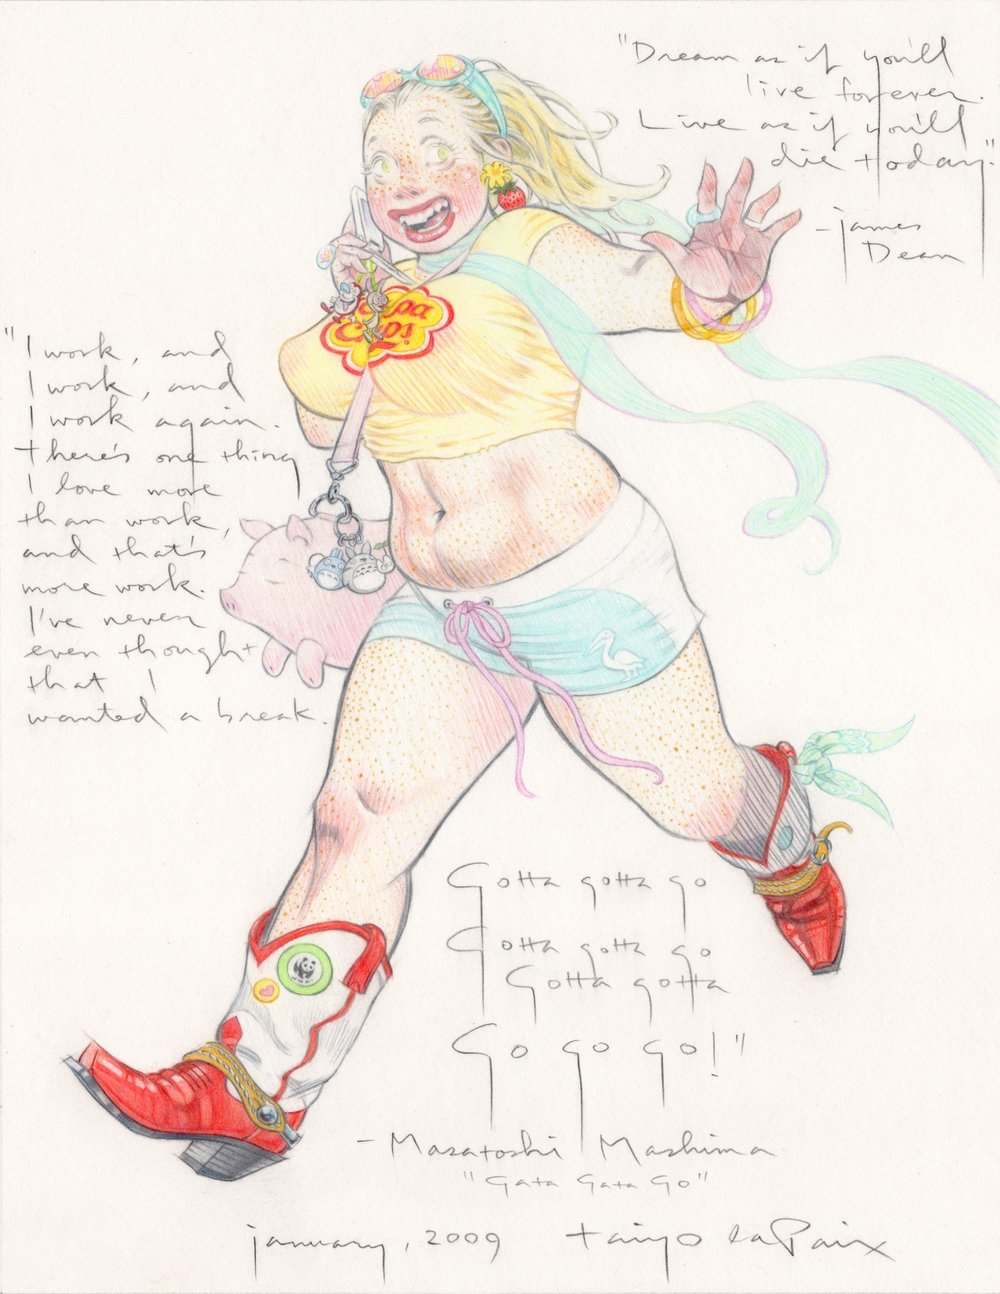 Gotta Gotta Go, 2009, pencil on paper, 8.5 x 11 inches, courtesy of Janis Ian and Patricia Snyder